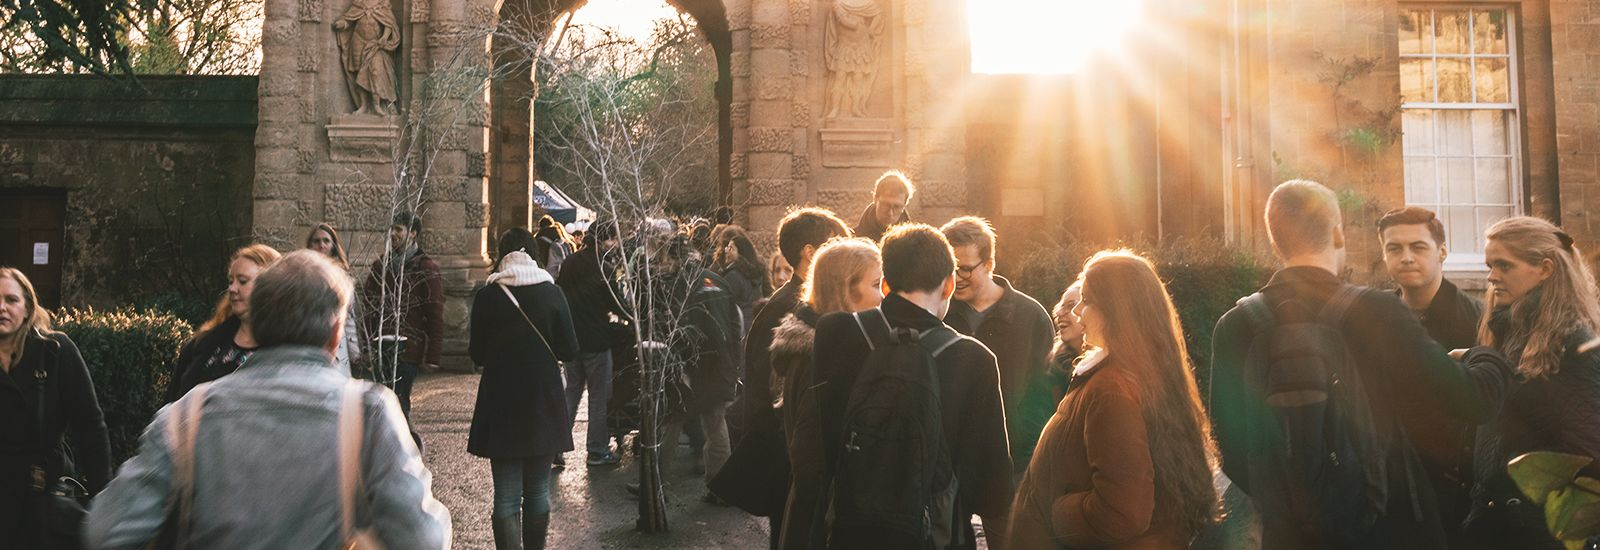 A photo of students standing near the archway entrance to the Botanic Gardens